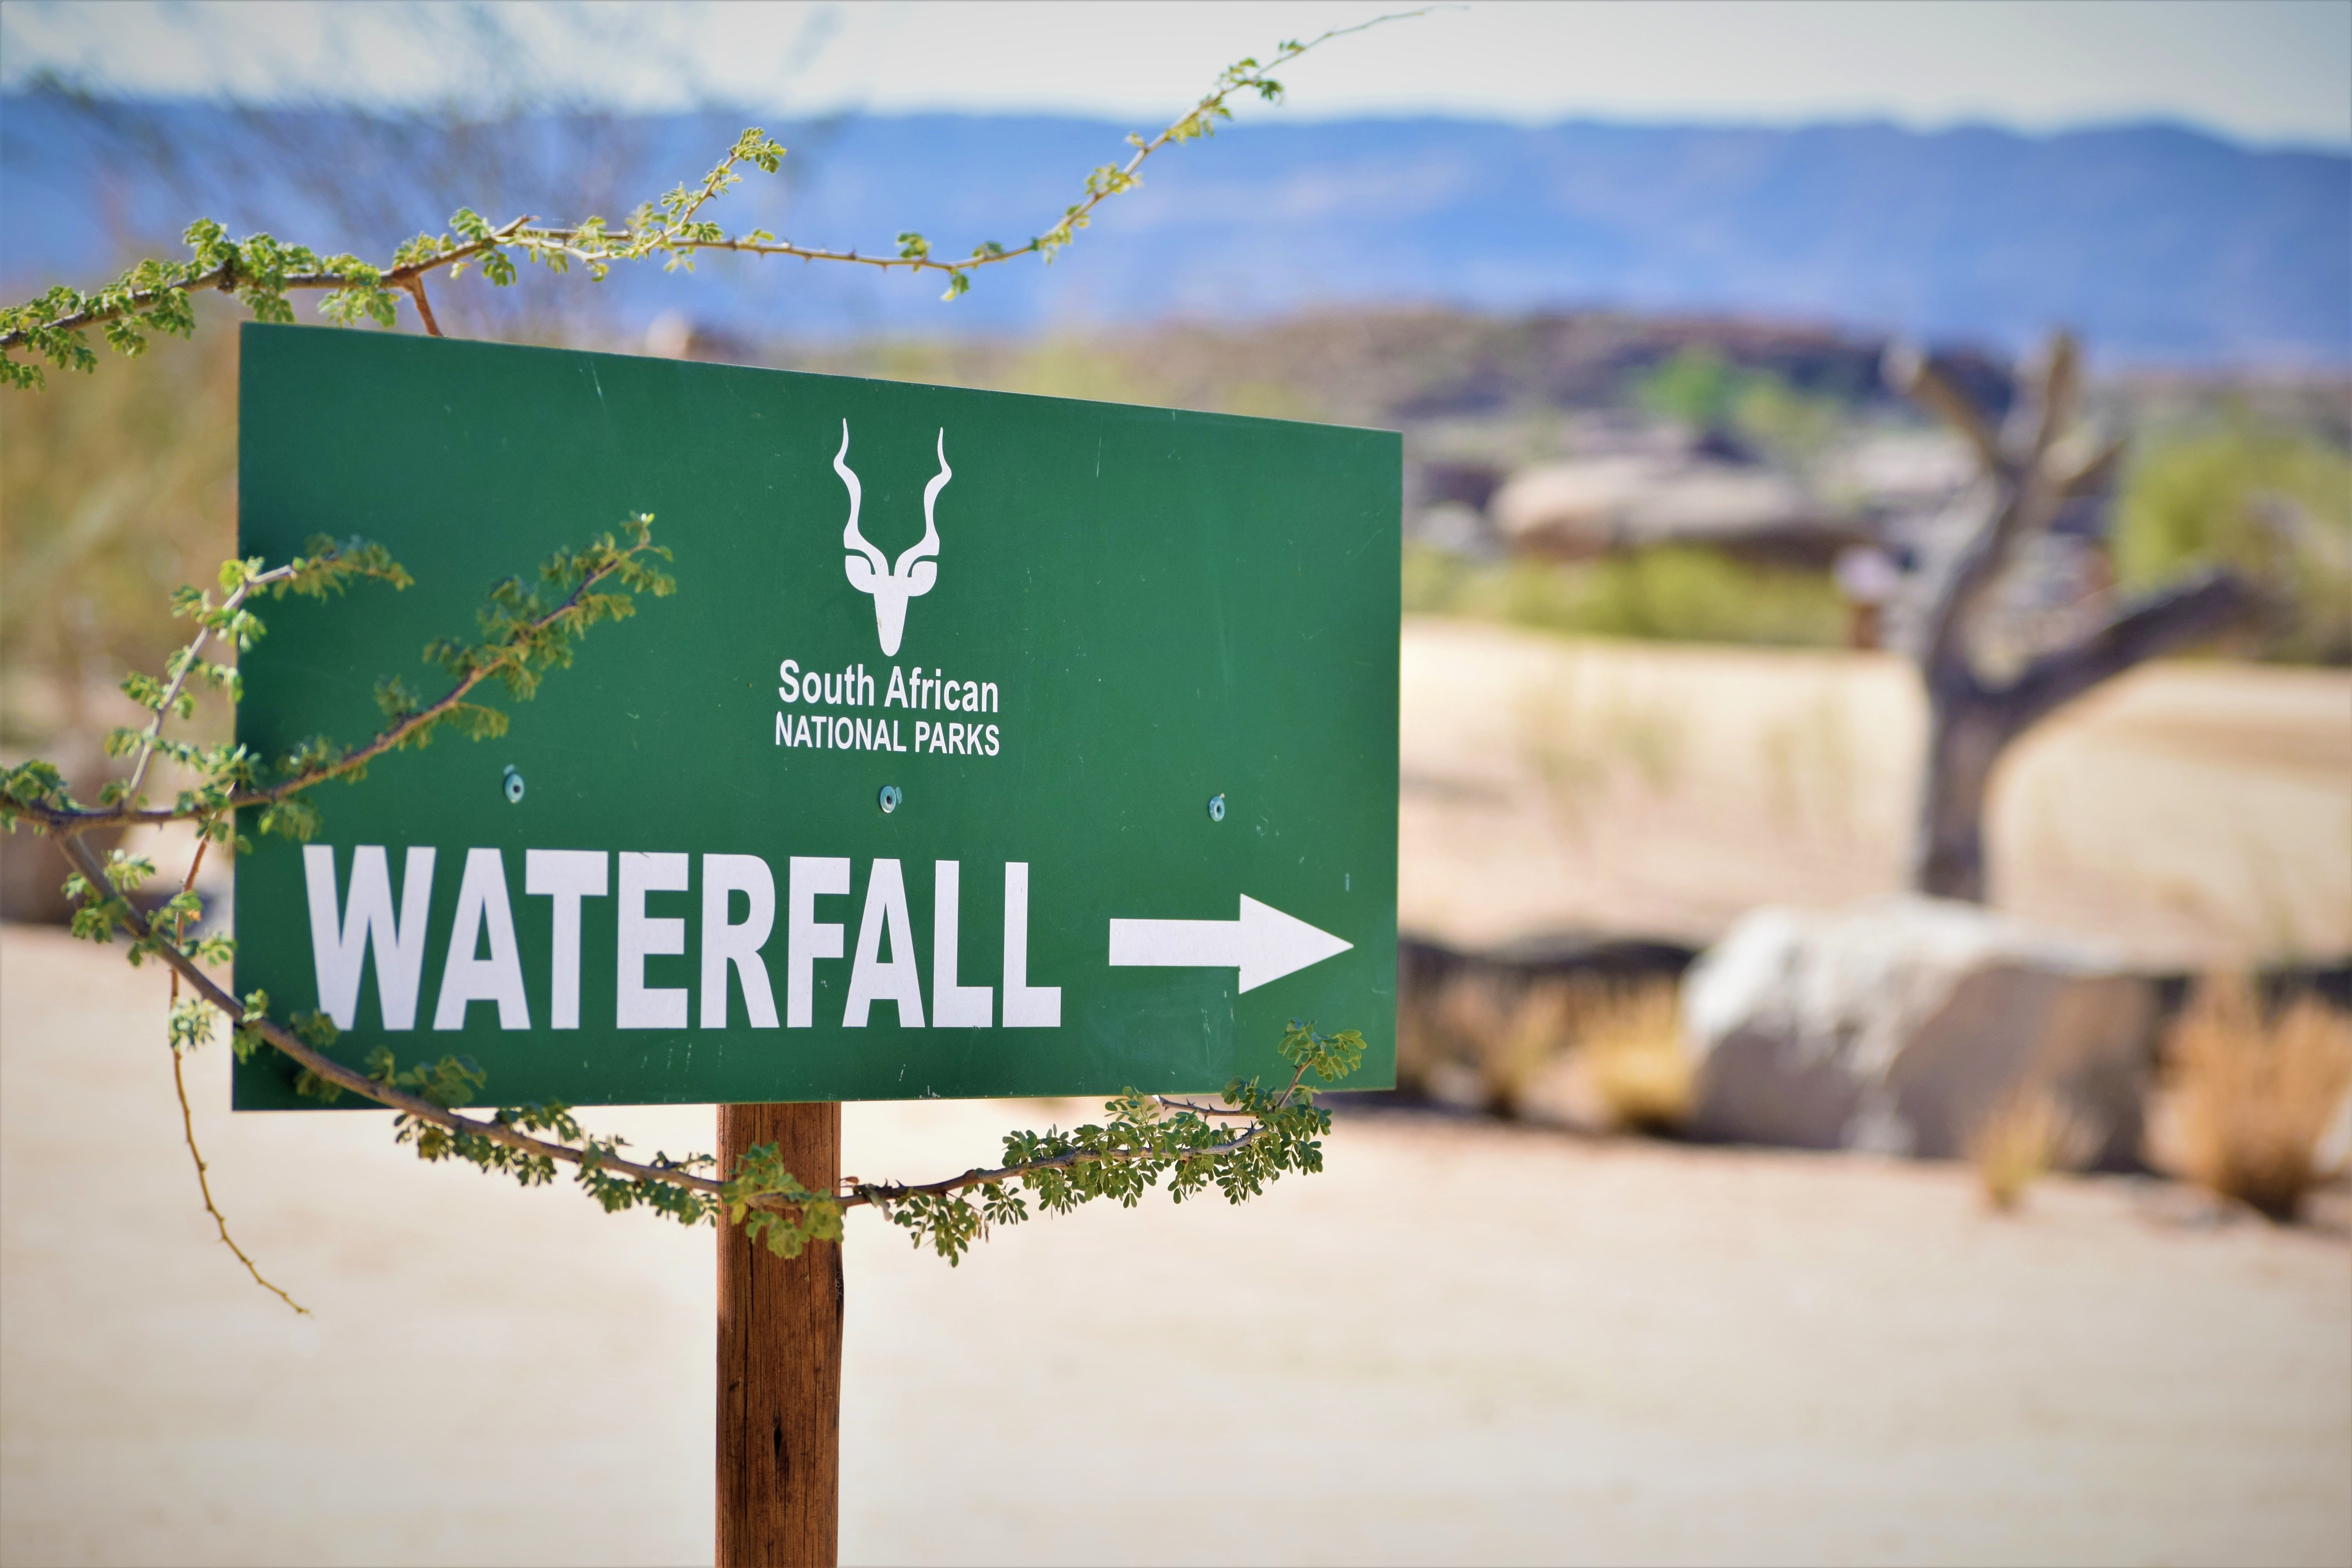 South African National Park waterfall roadsign